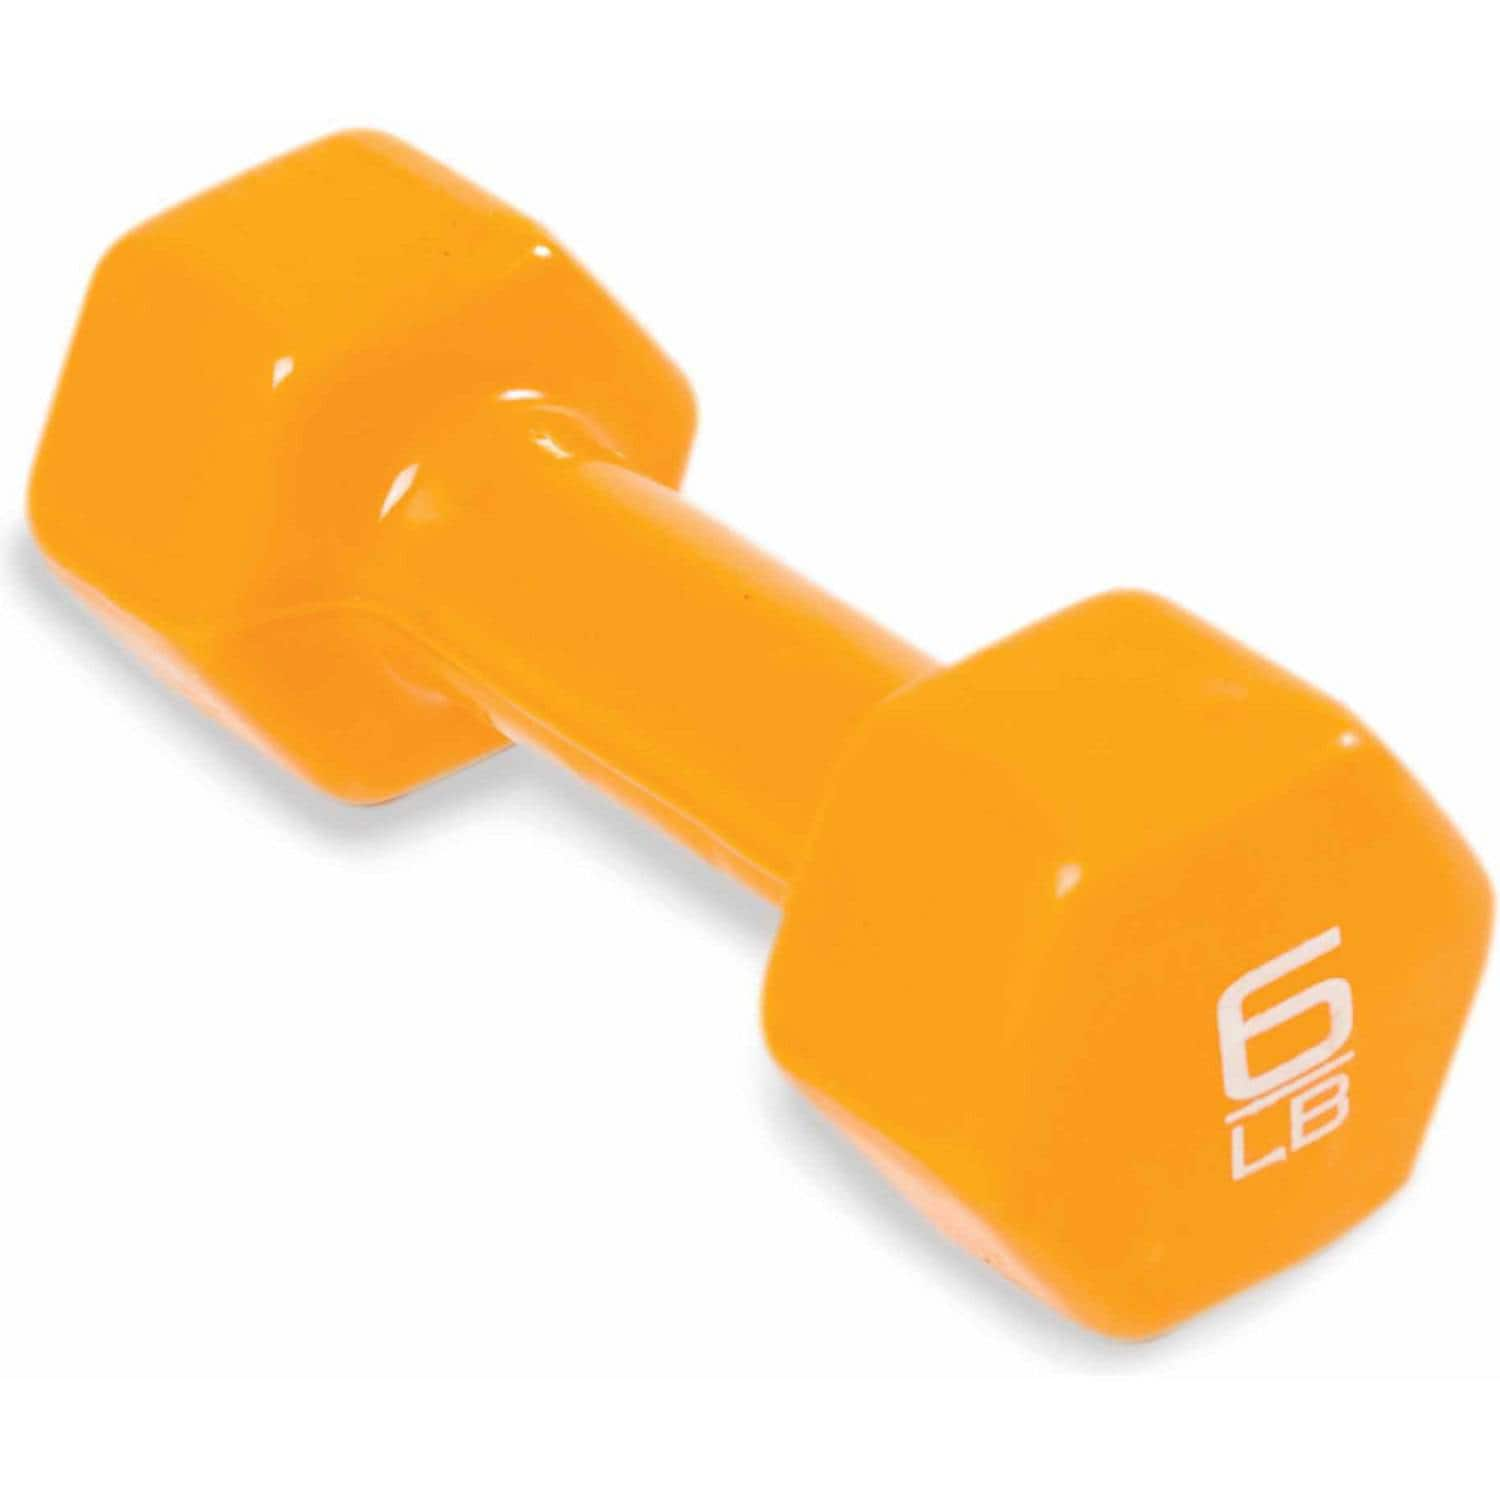 Add-on Item: 6-Pound CAP Barbell Vinyl Coated Single Dumbbell for $4.50